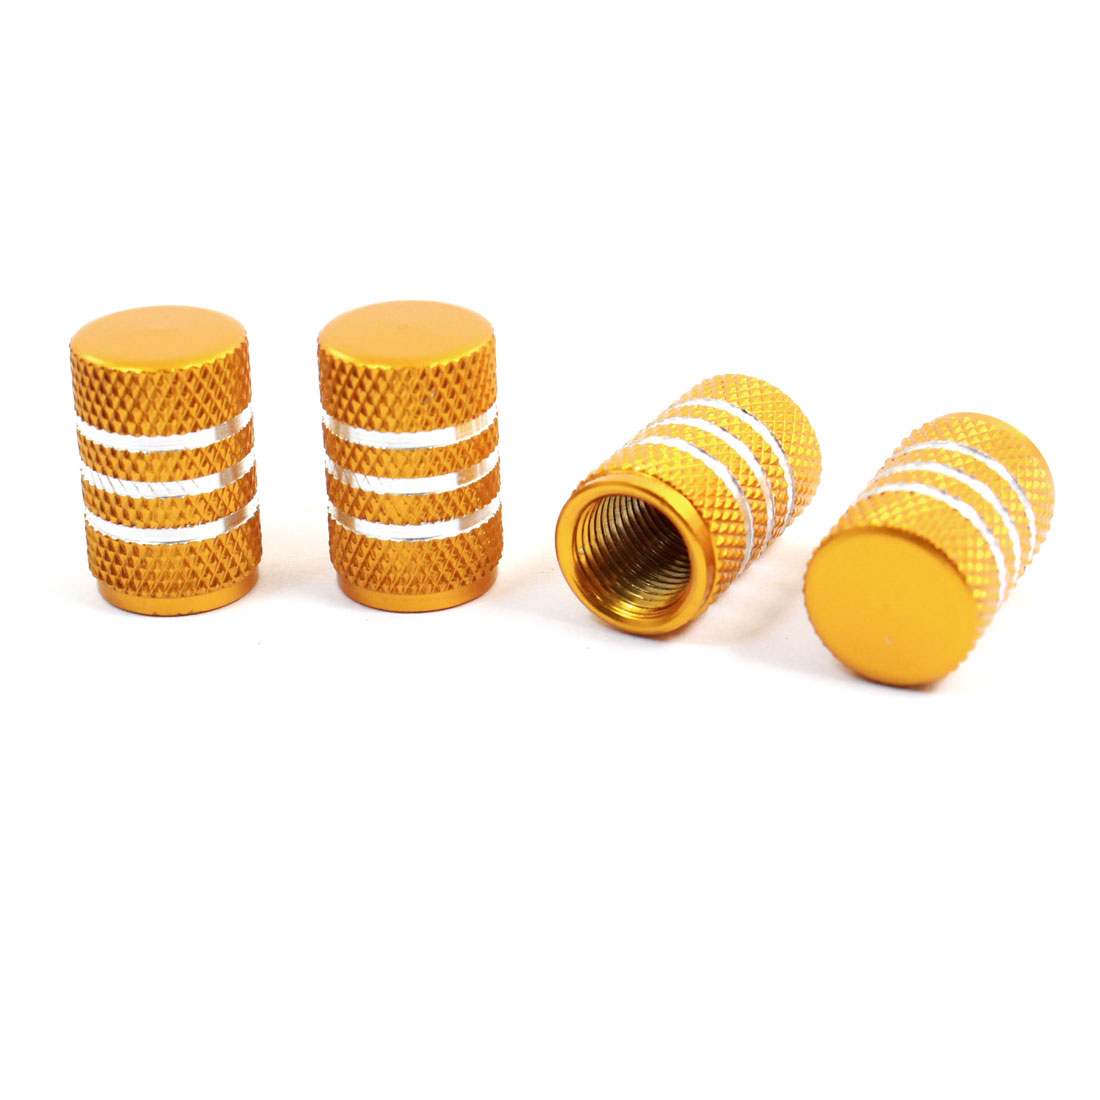 7mm Male Thread Gold Tone Alloy Auto Tyre Tire Valve Caps Protectors Covers 4 Pcs